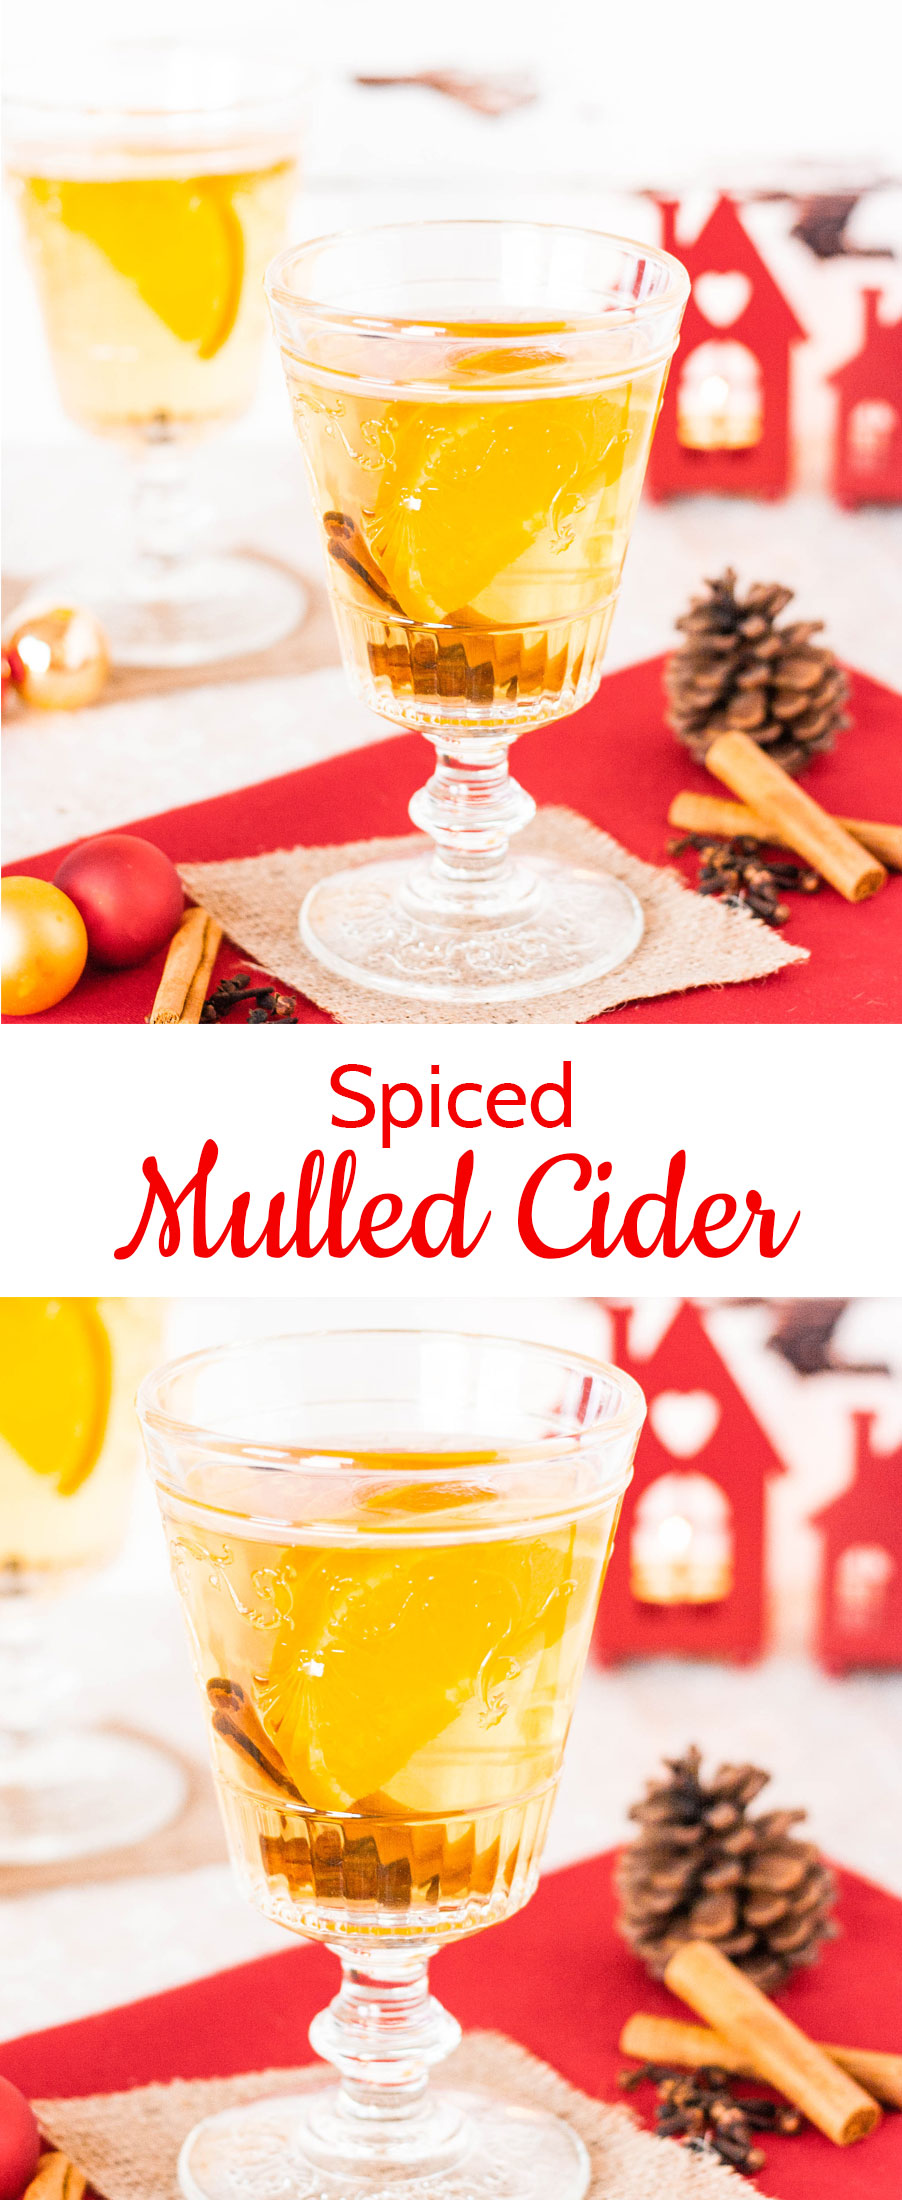 Mulled cider, a cheap and delicious alternative to mulled wine